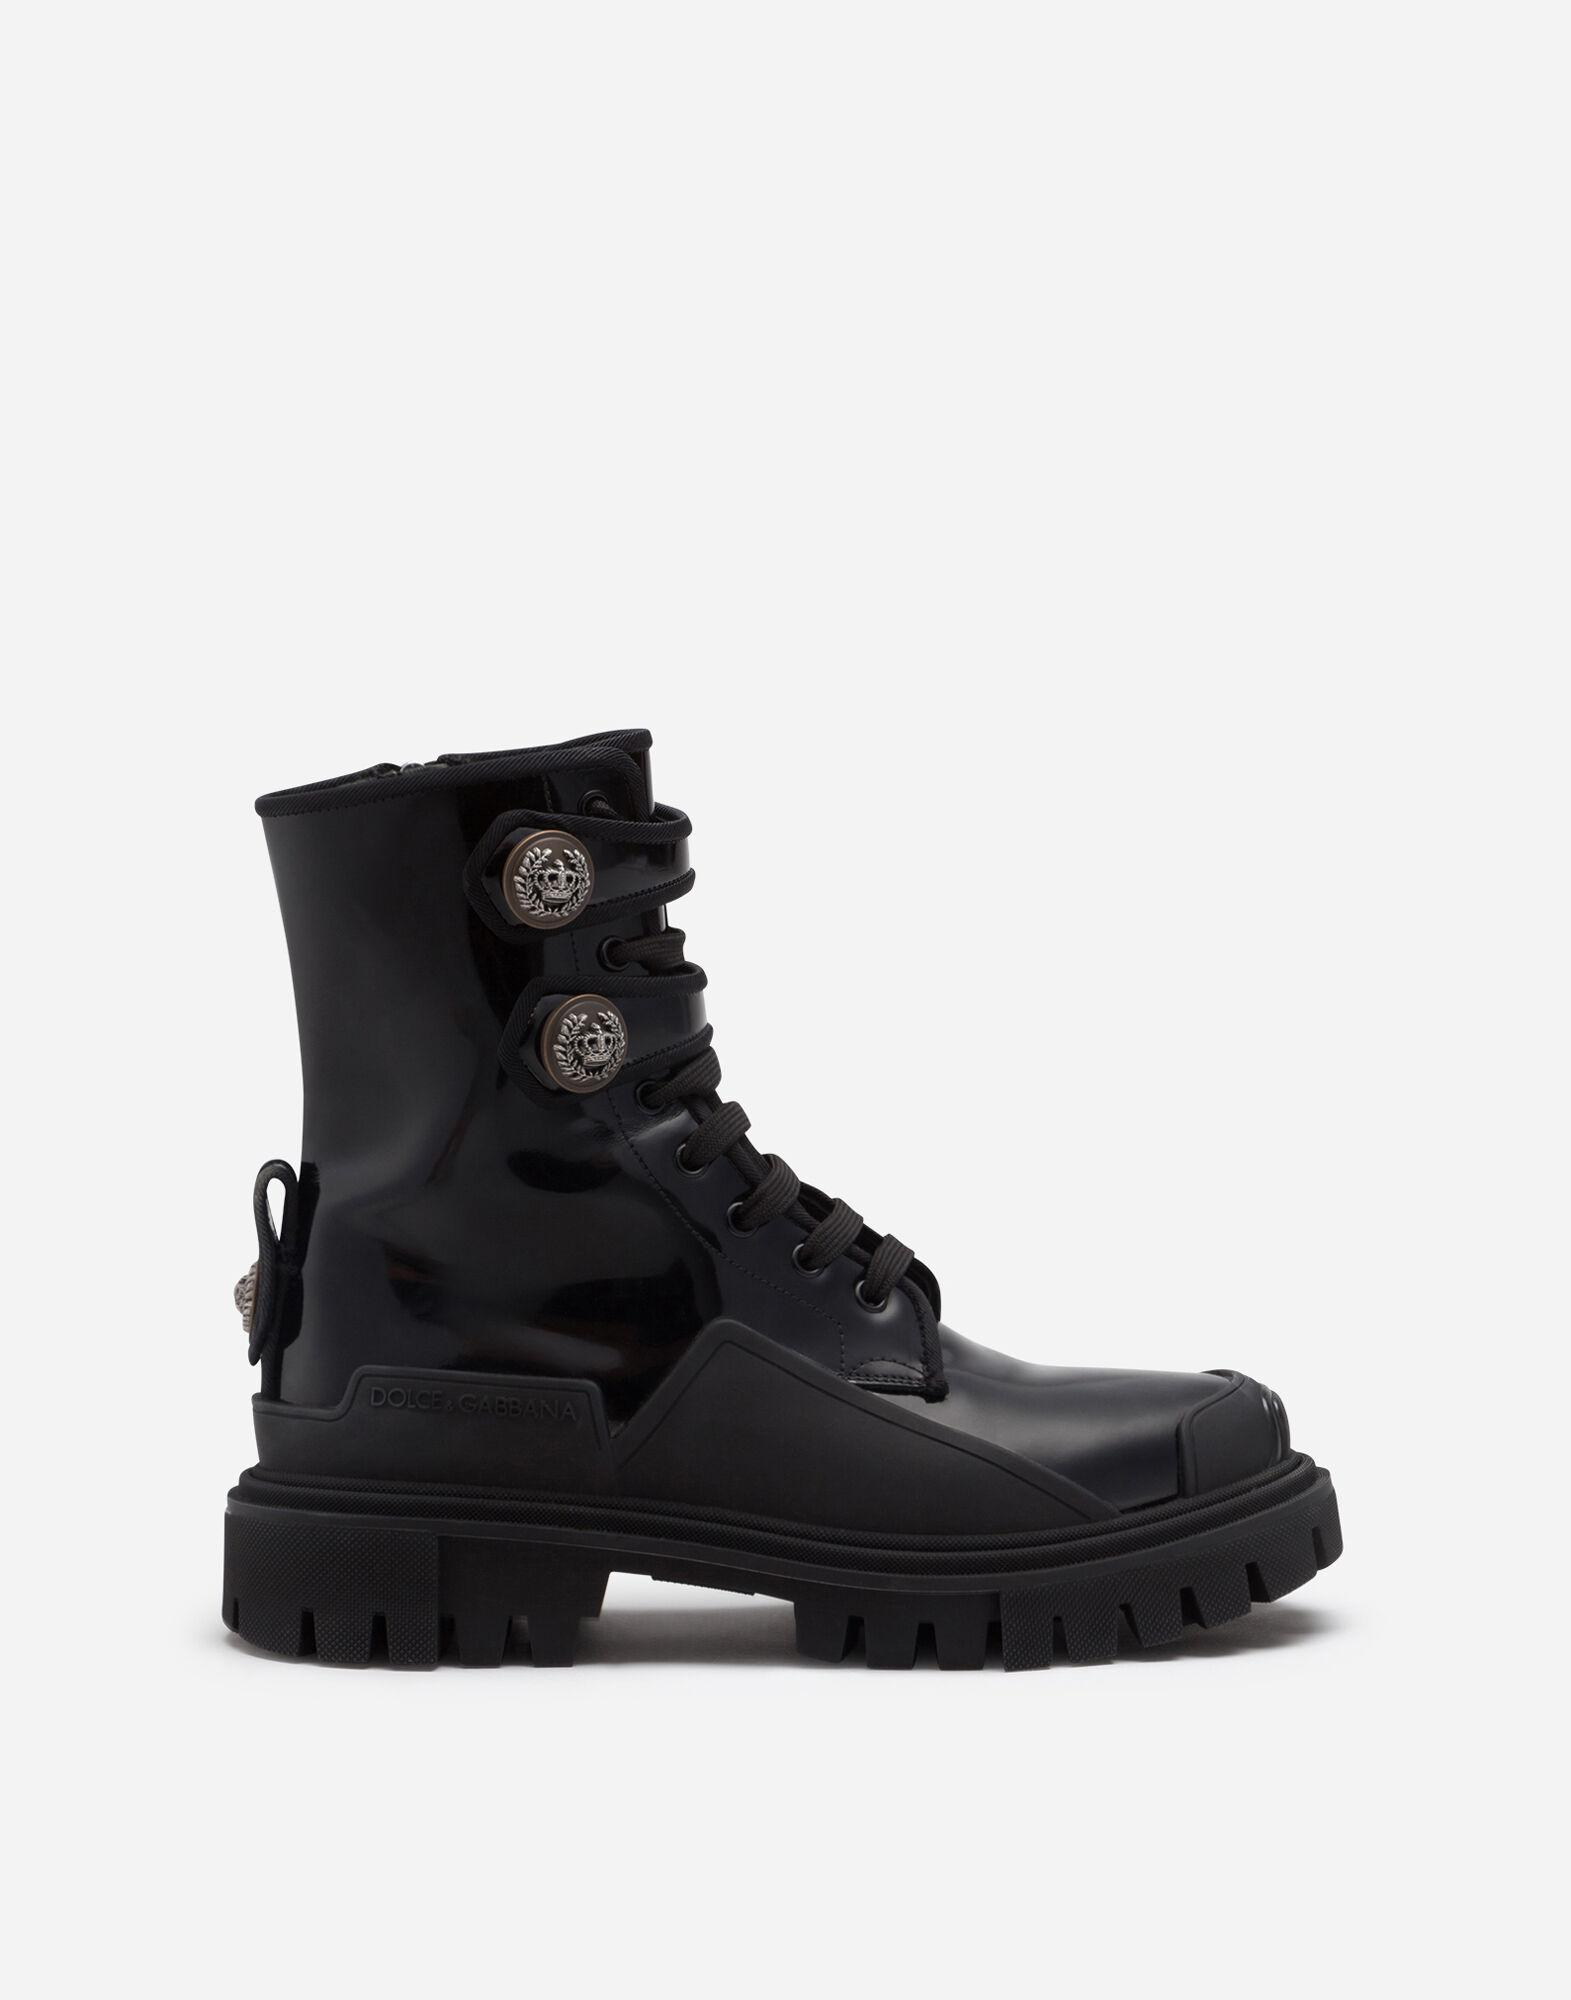 Polished calfskin trekking boots with buttons